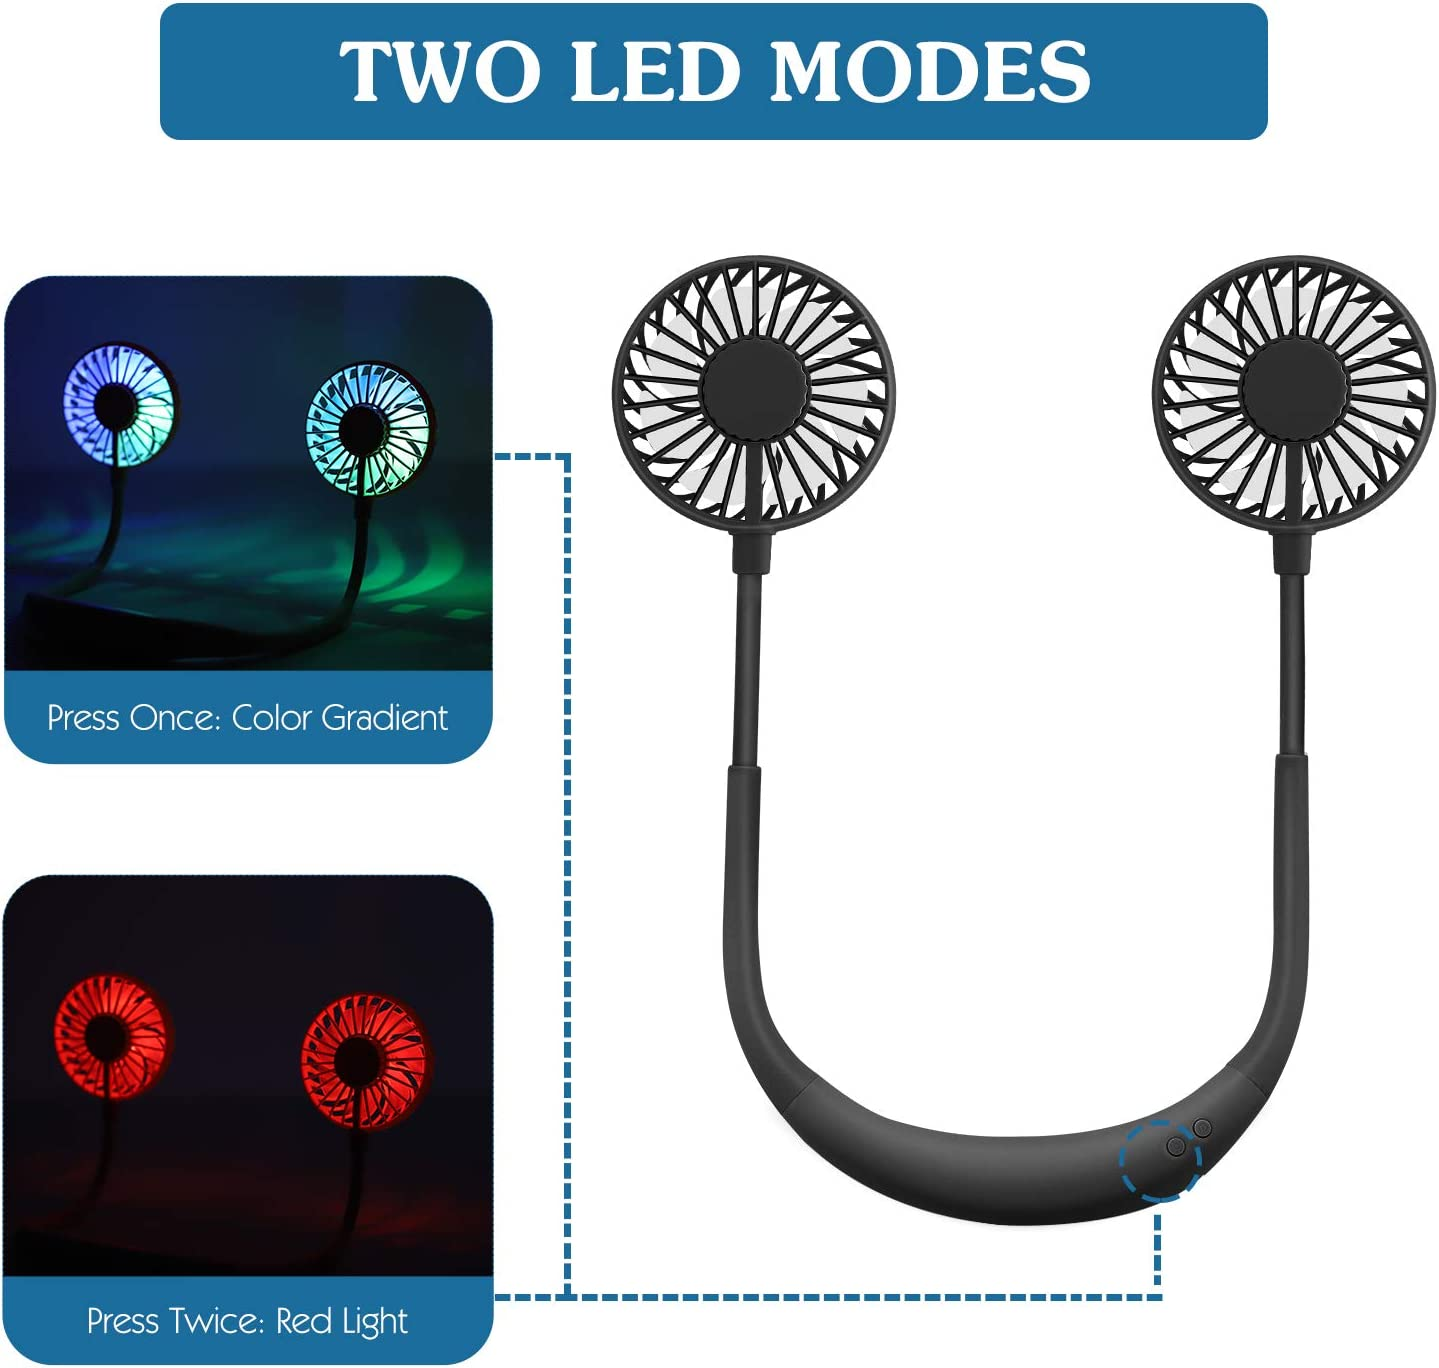 3 Speeds and 360 Degree Adjustment Head for Sports Office Outdoor Travel 2 modes LED Light MoKo Portable Personal Fan Black Hand Free Small USB Mini Neck Fan with 2000mAh Rechargeable Battery